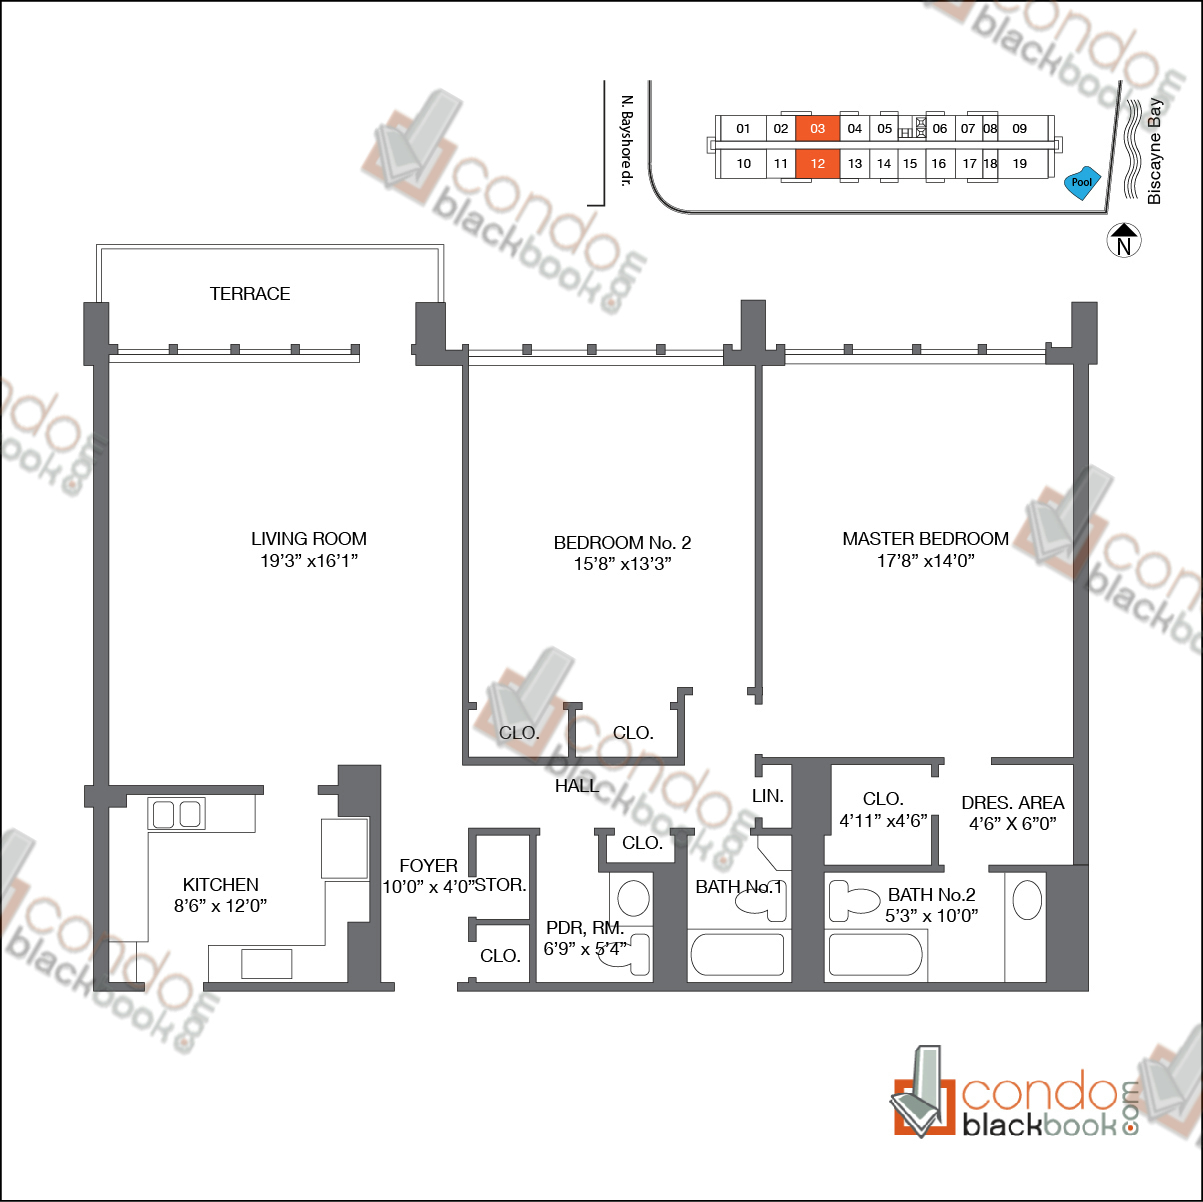 Marina Blue Floor Plans: Condo Floor Plans Miami